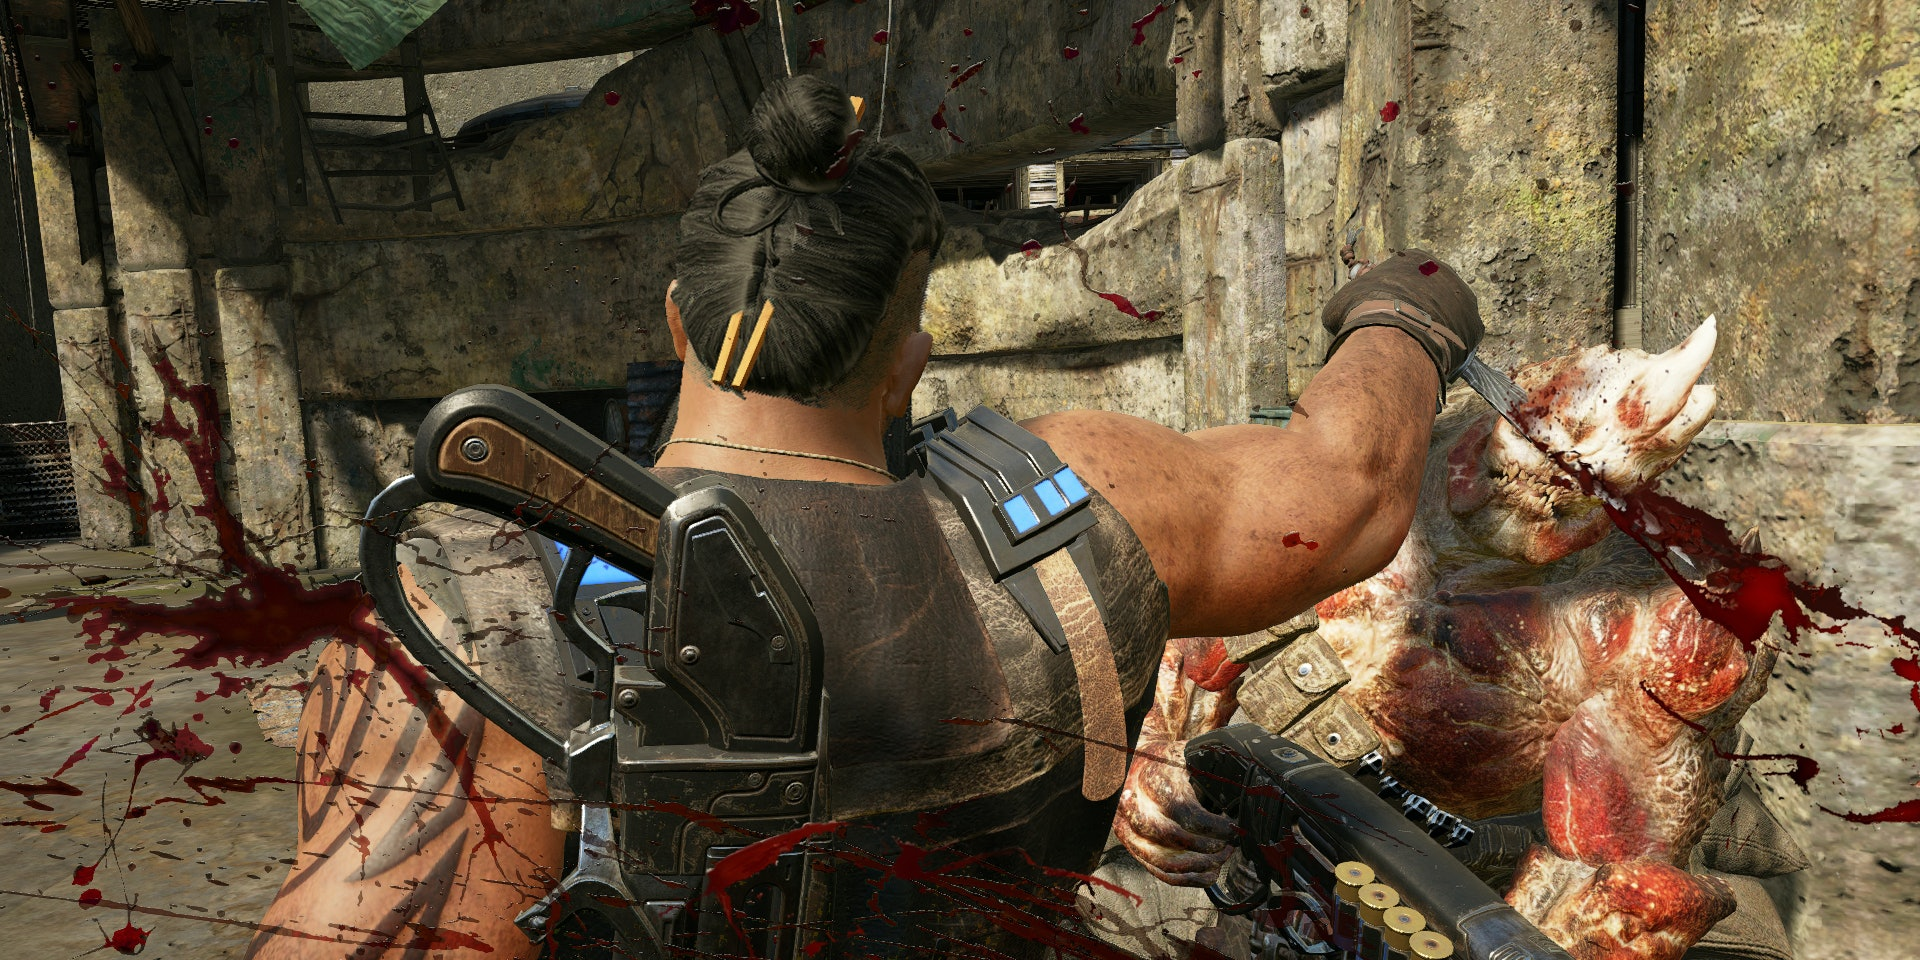 The Absolute Best Weapons in 'Gears of War'